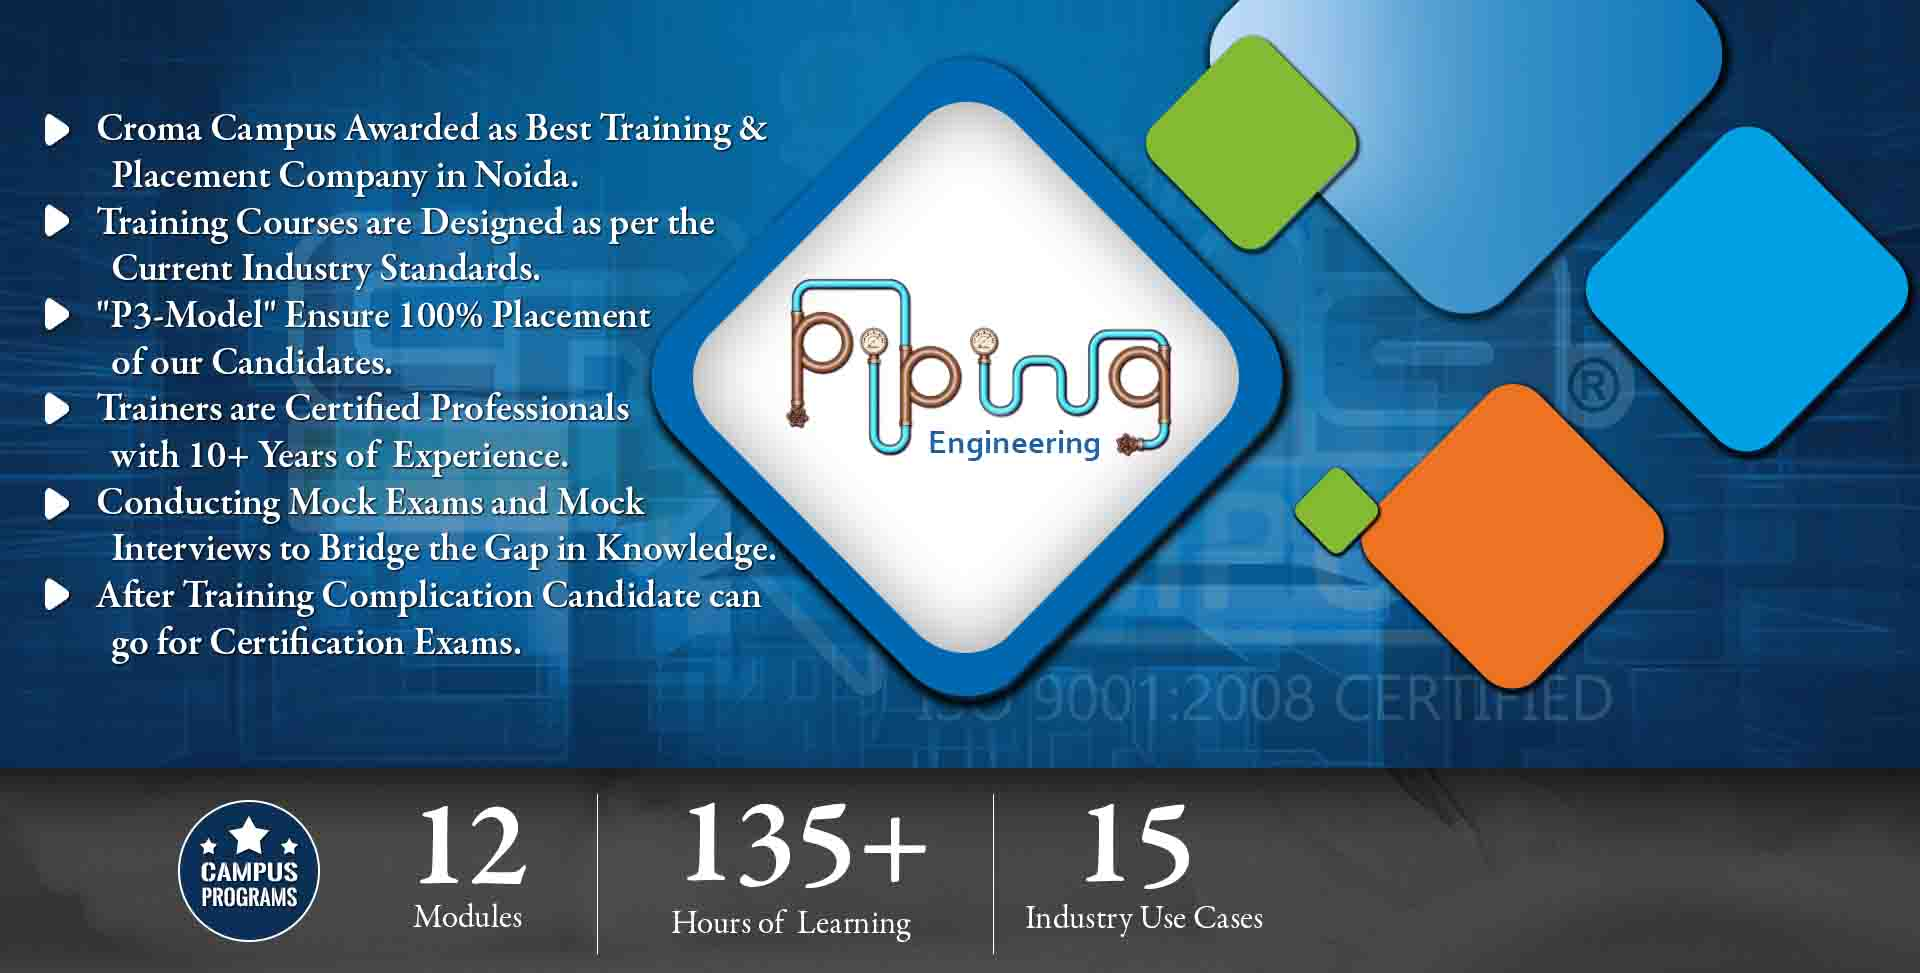 Piping Engineering Training In Delhi Layout Consultants Ncr Croma Campus